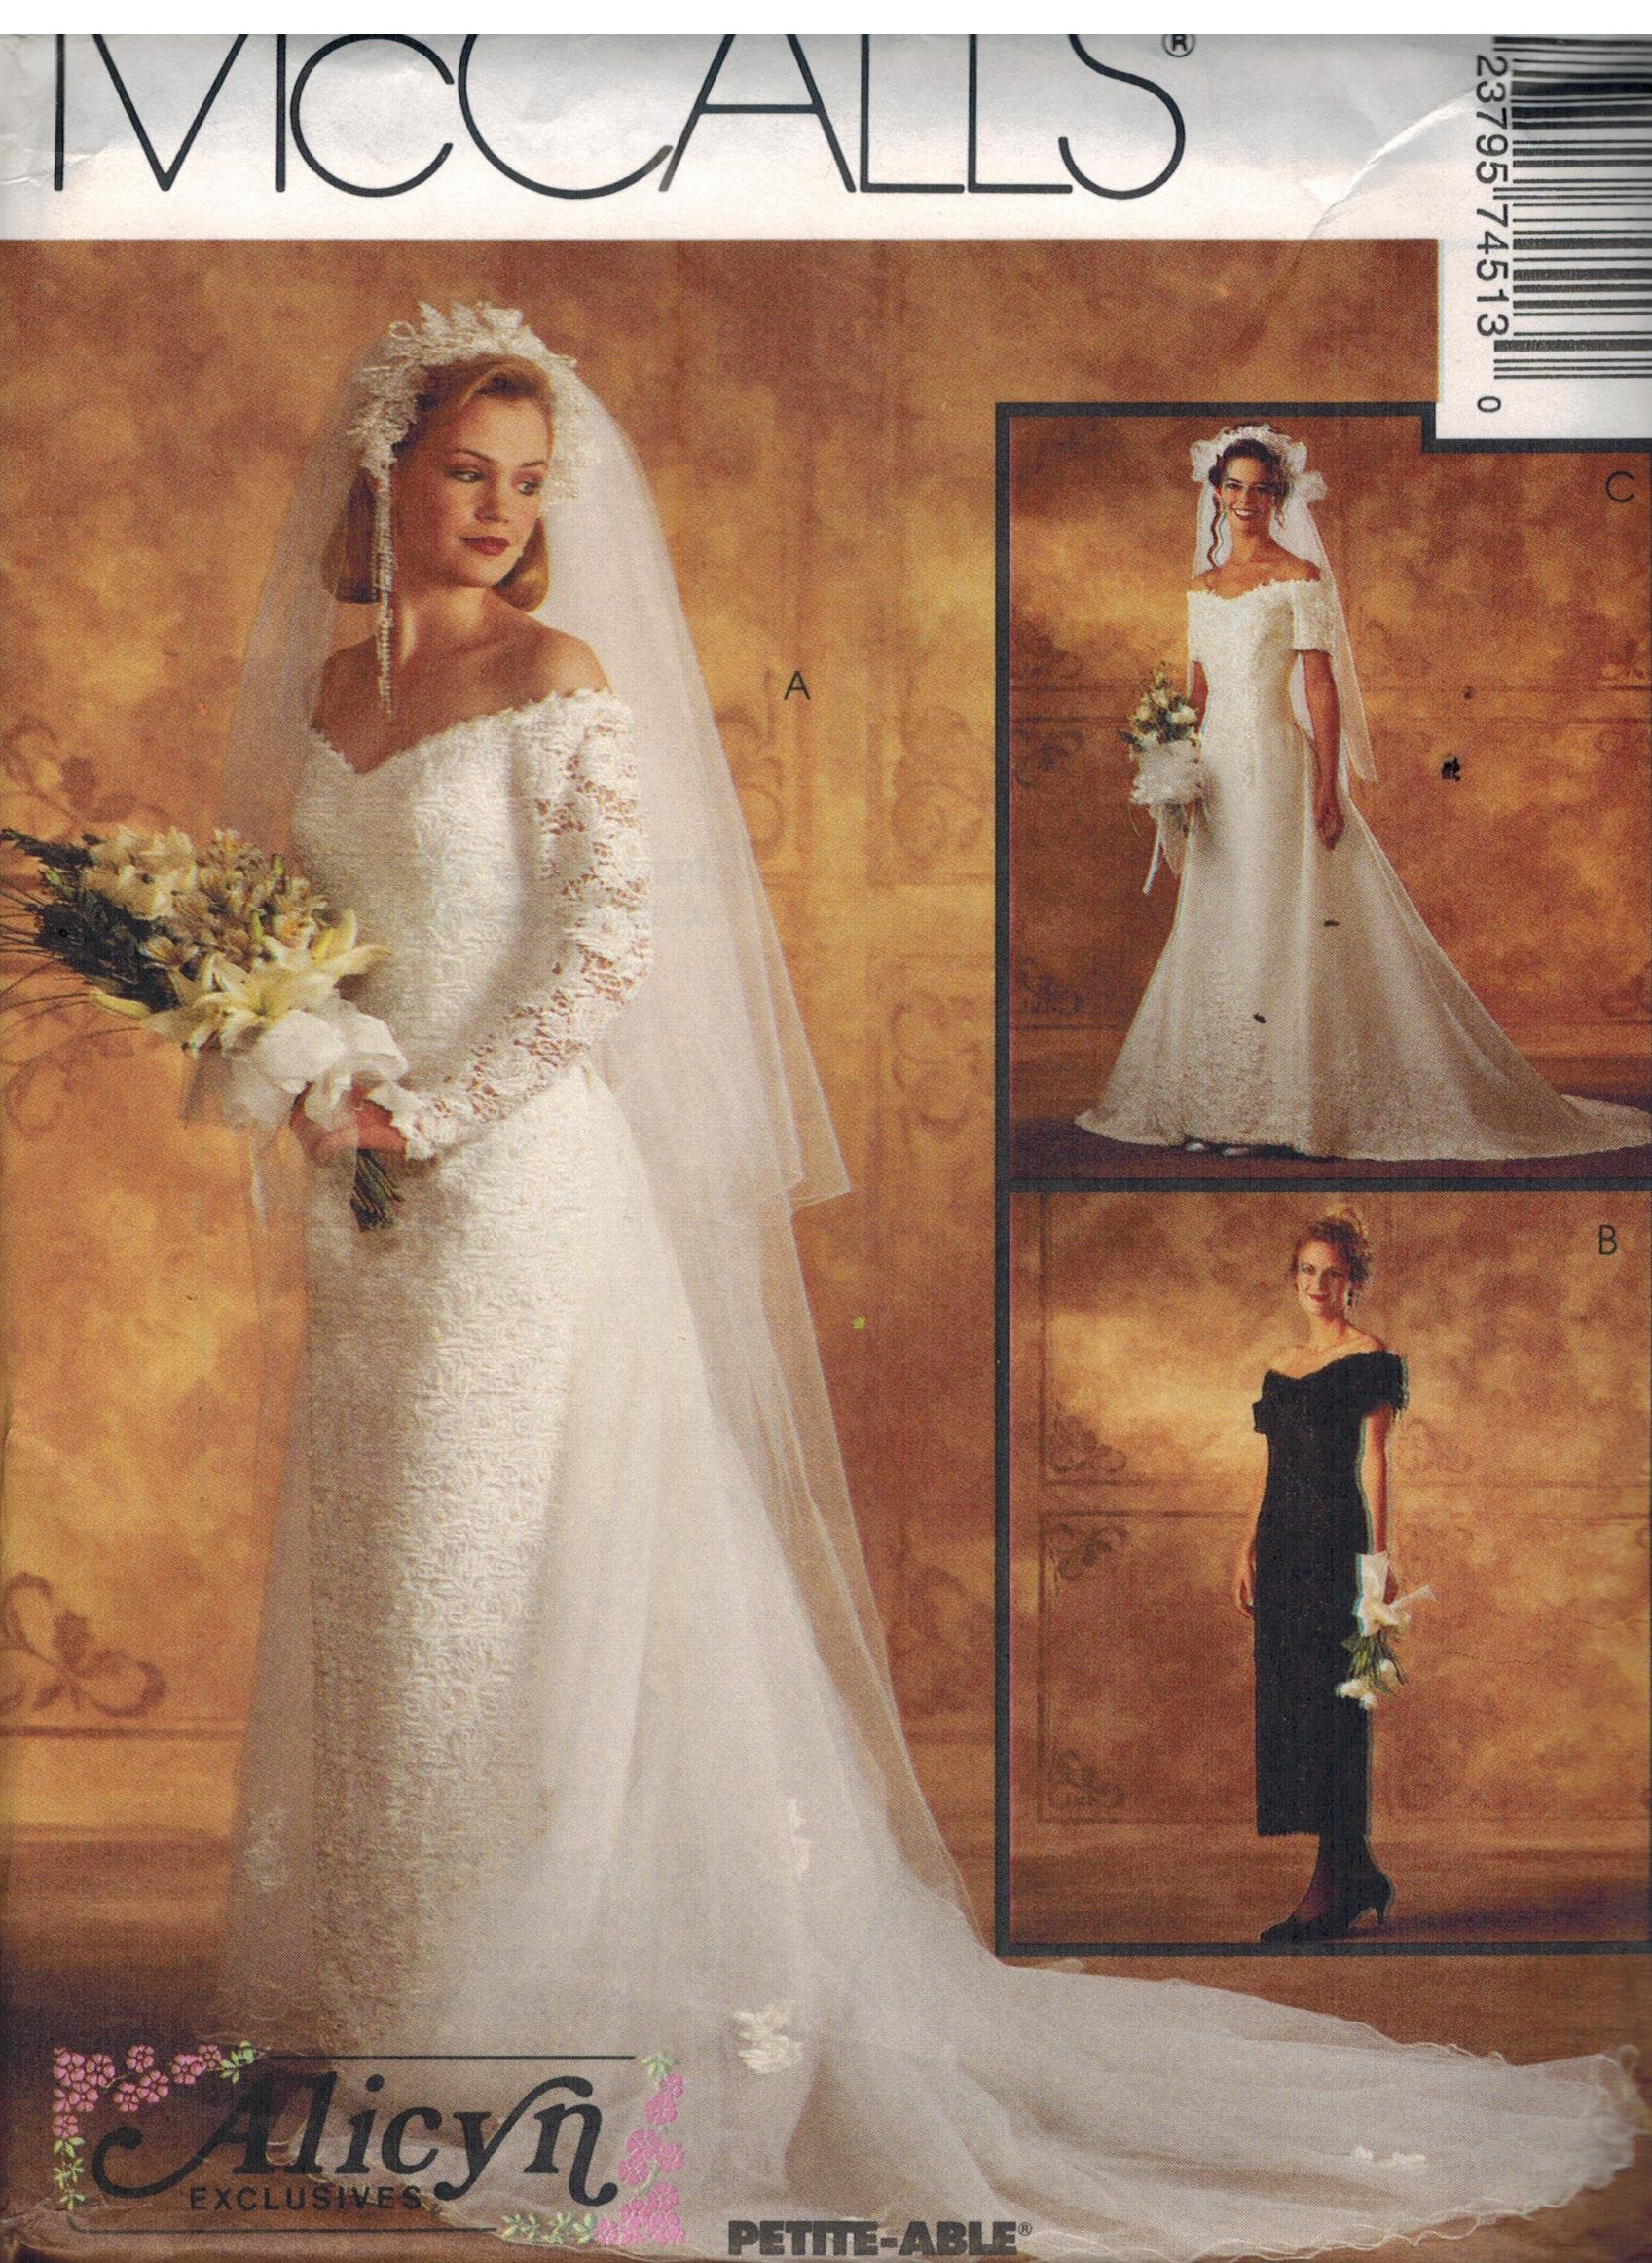 Mccalls Wedding Dress Patterns Browse Patterns,Mothers Bride Wedding Dresses